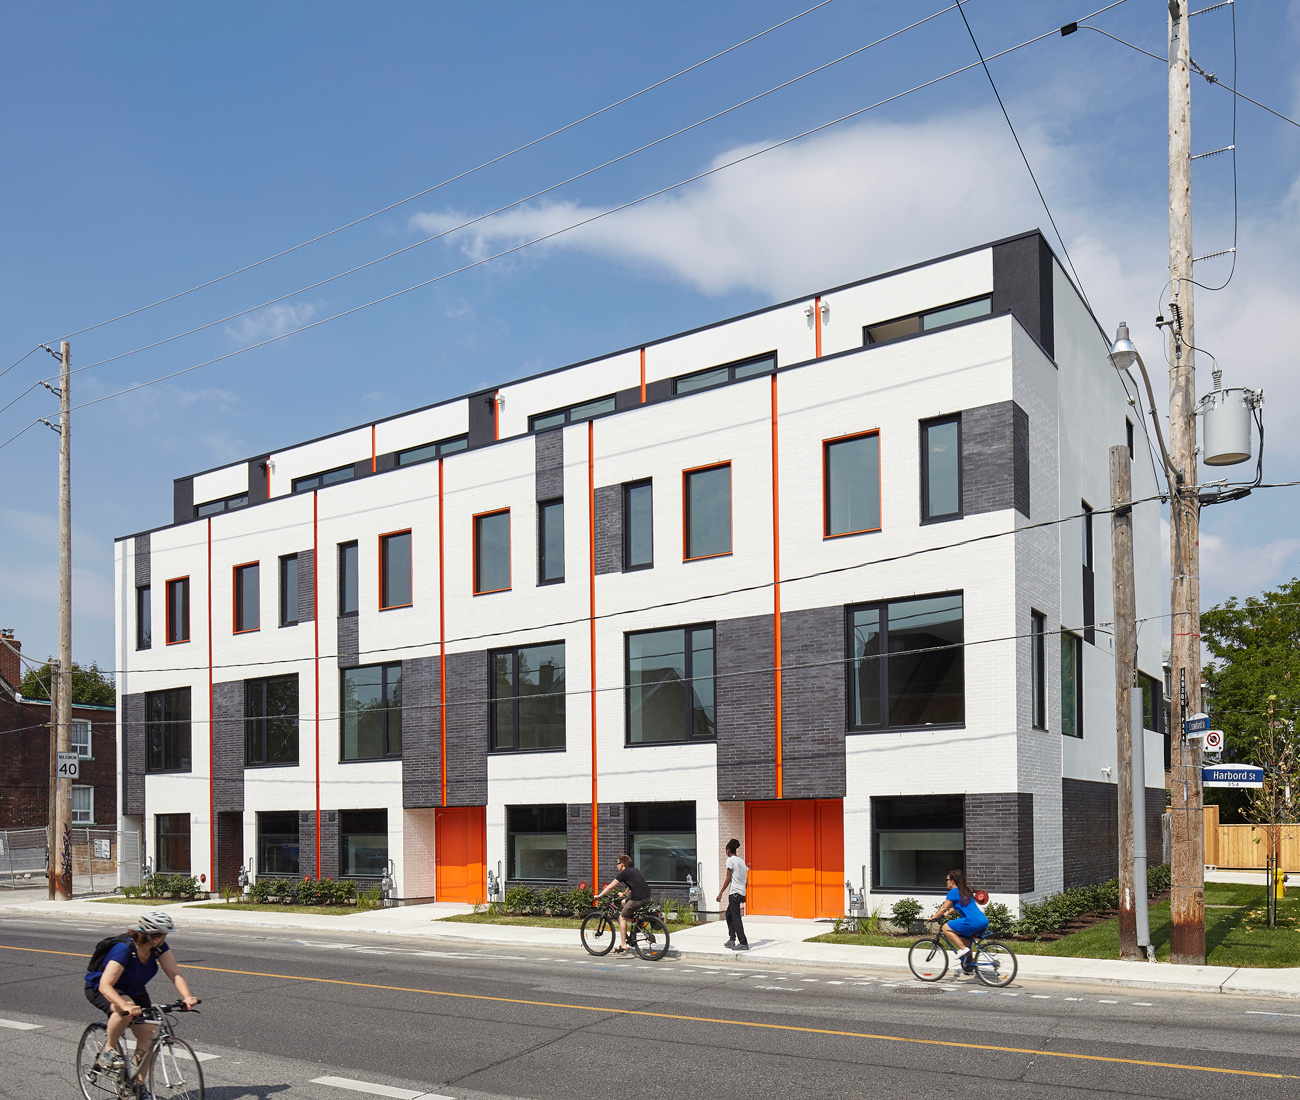 Grey and white brick and orange finishes make Superkül's design hard to miss. To reduce waste and save time, the project was built on-site using prefabricated frames. Photo by Ben Rahn.